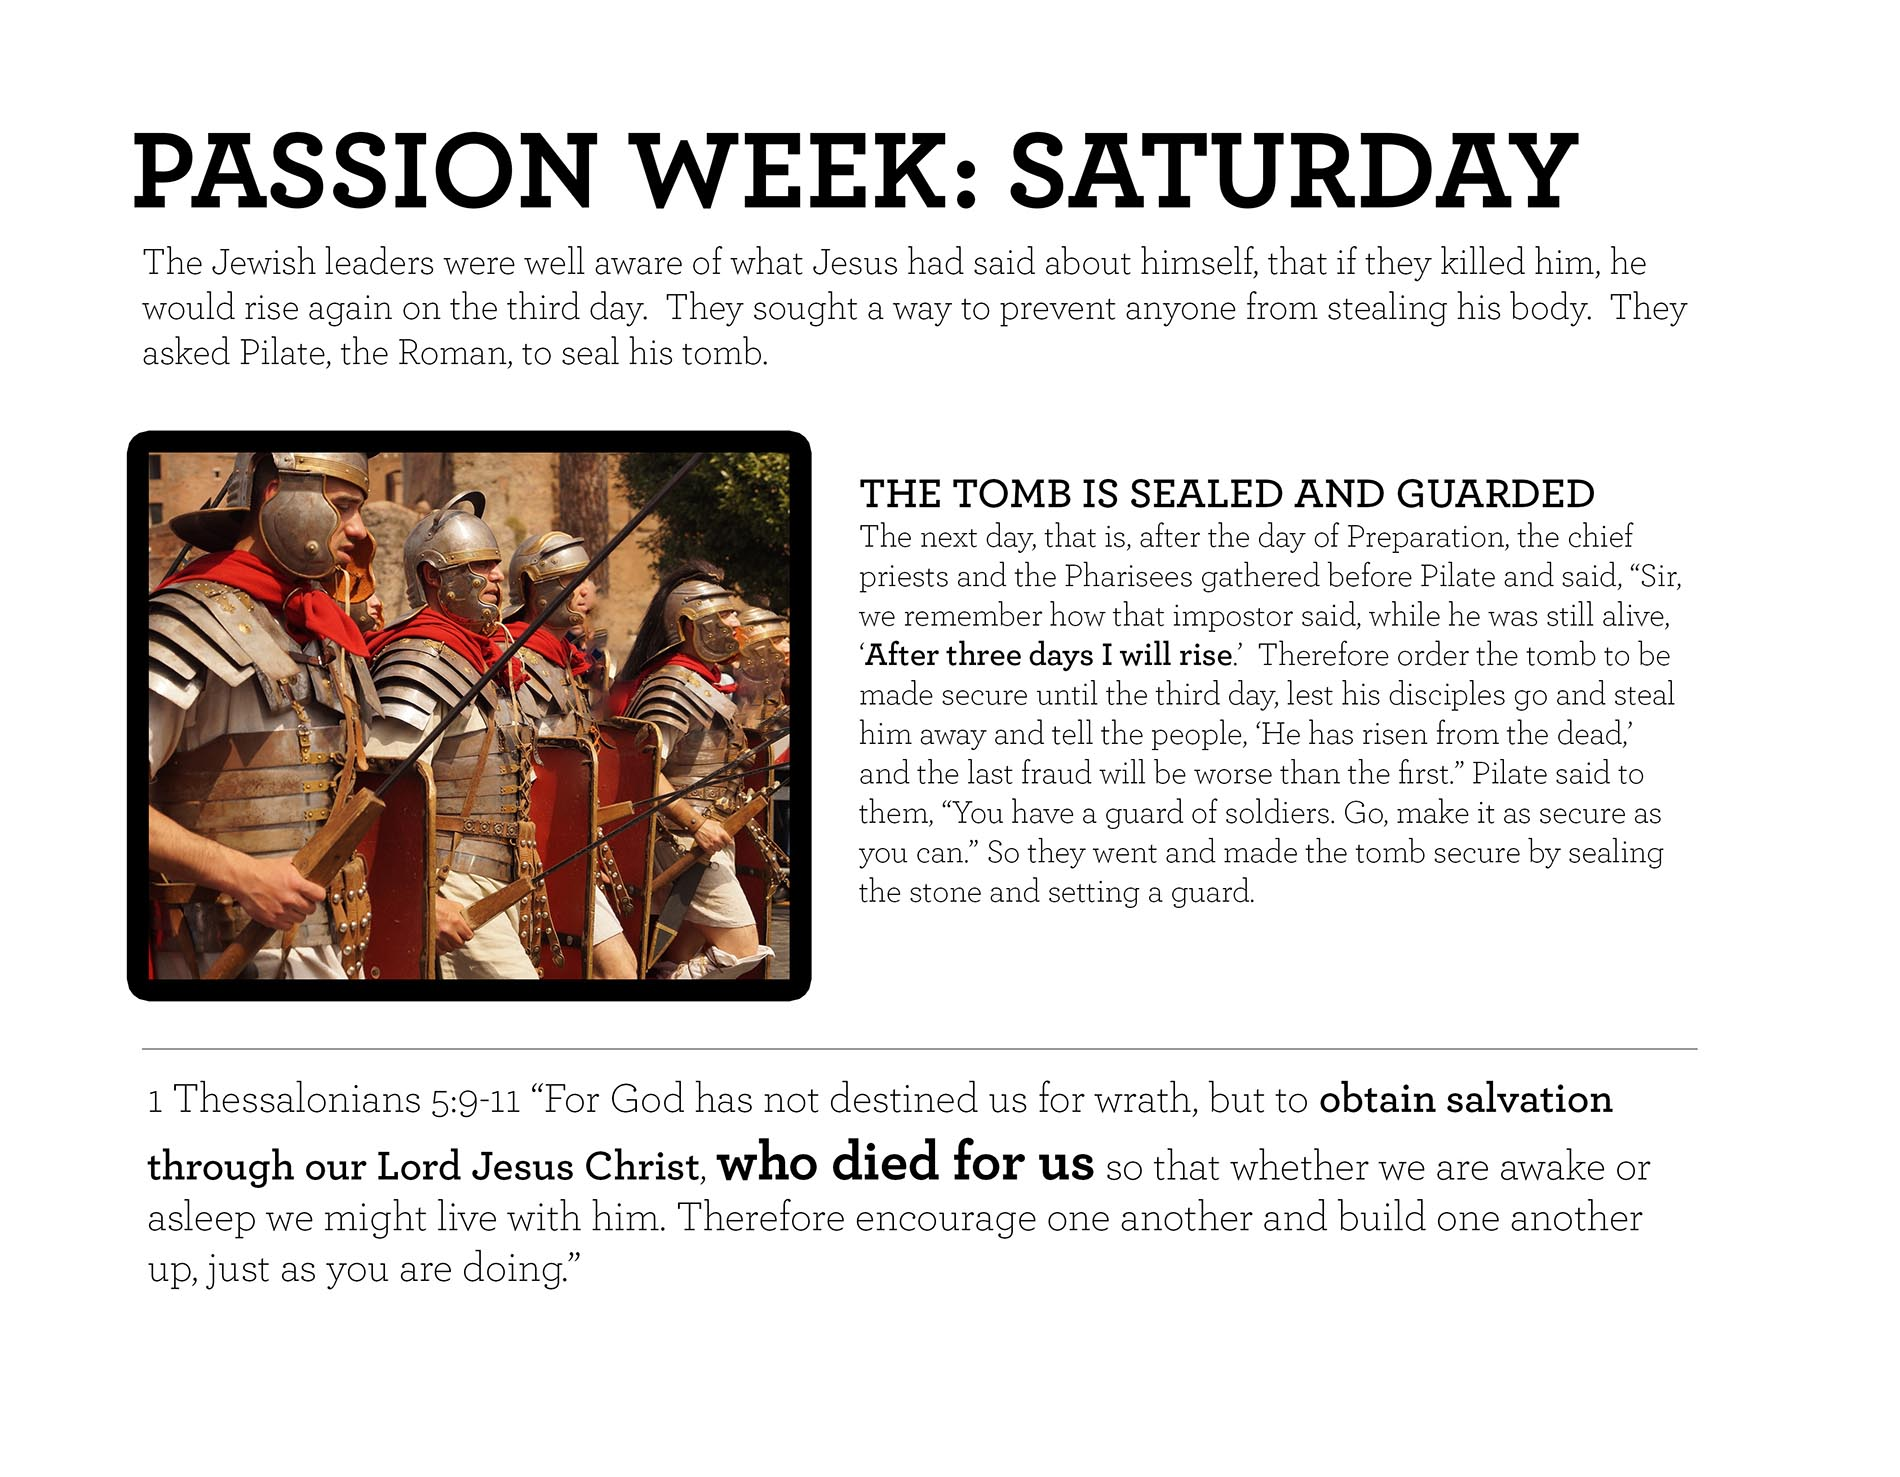 PASSION WEEK: SATURDAY 1 Thessalonians 5:9-11